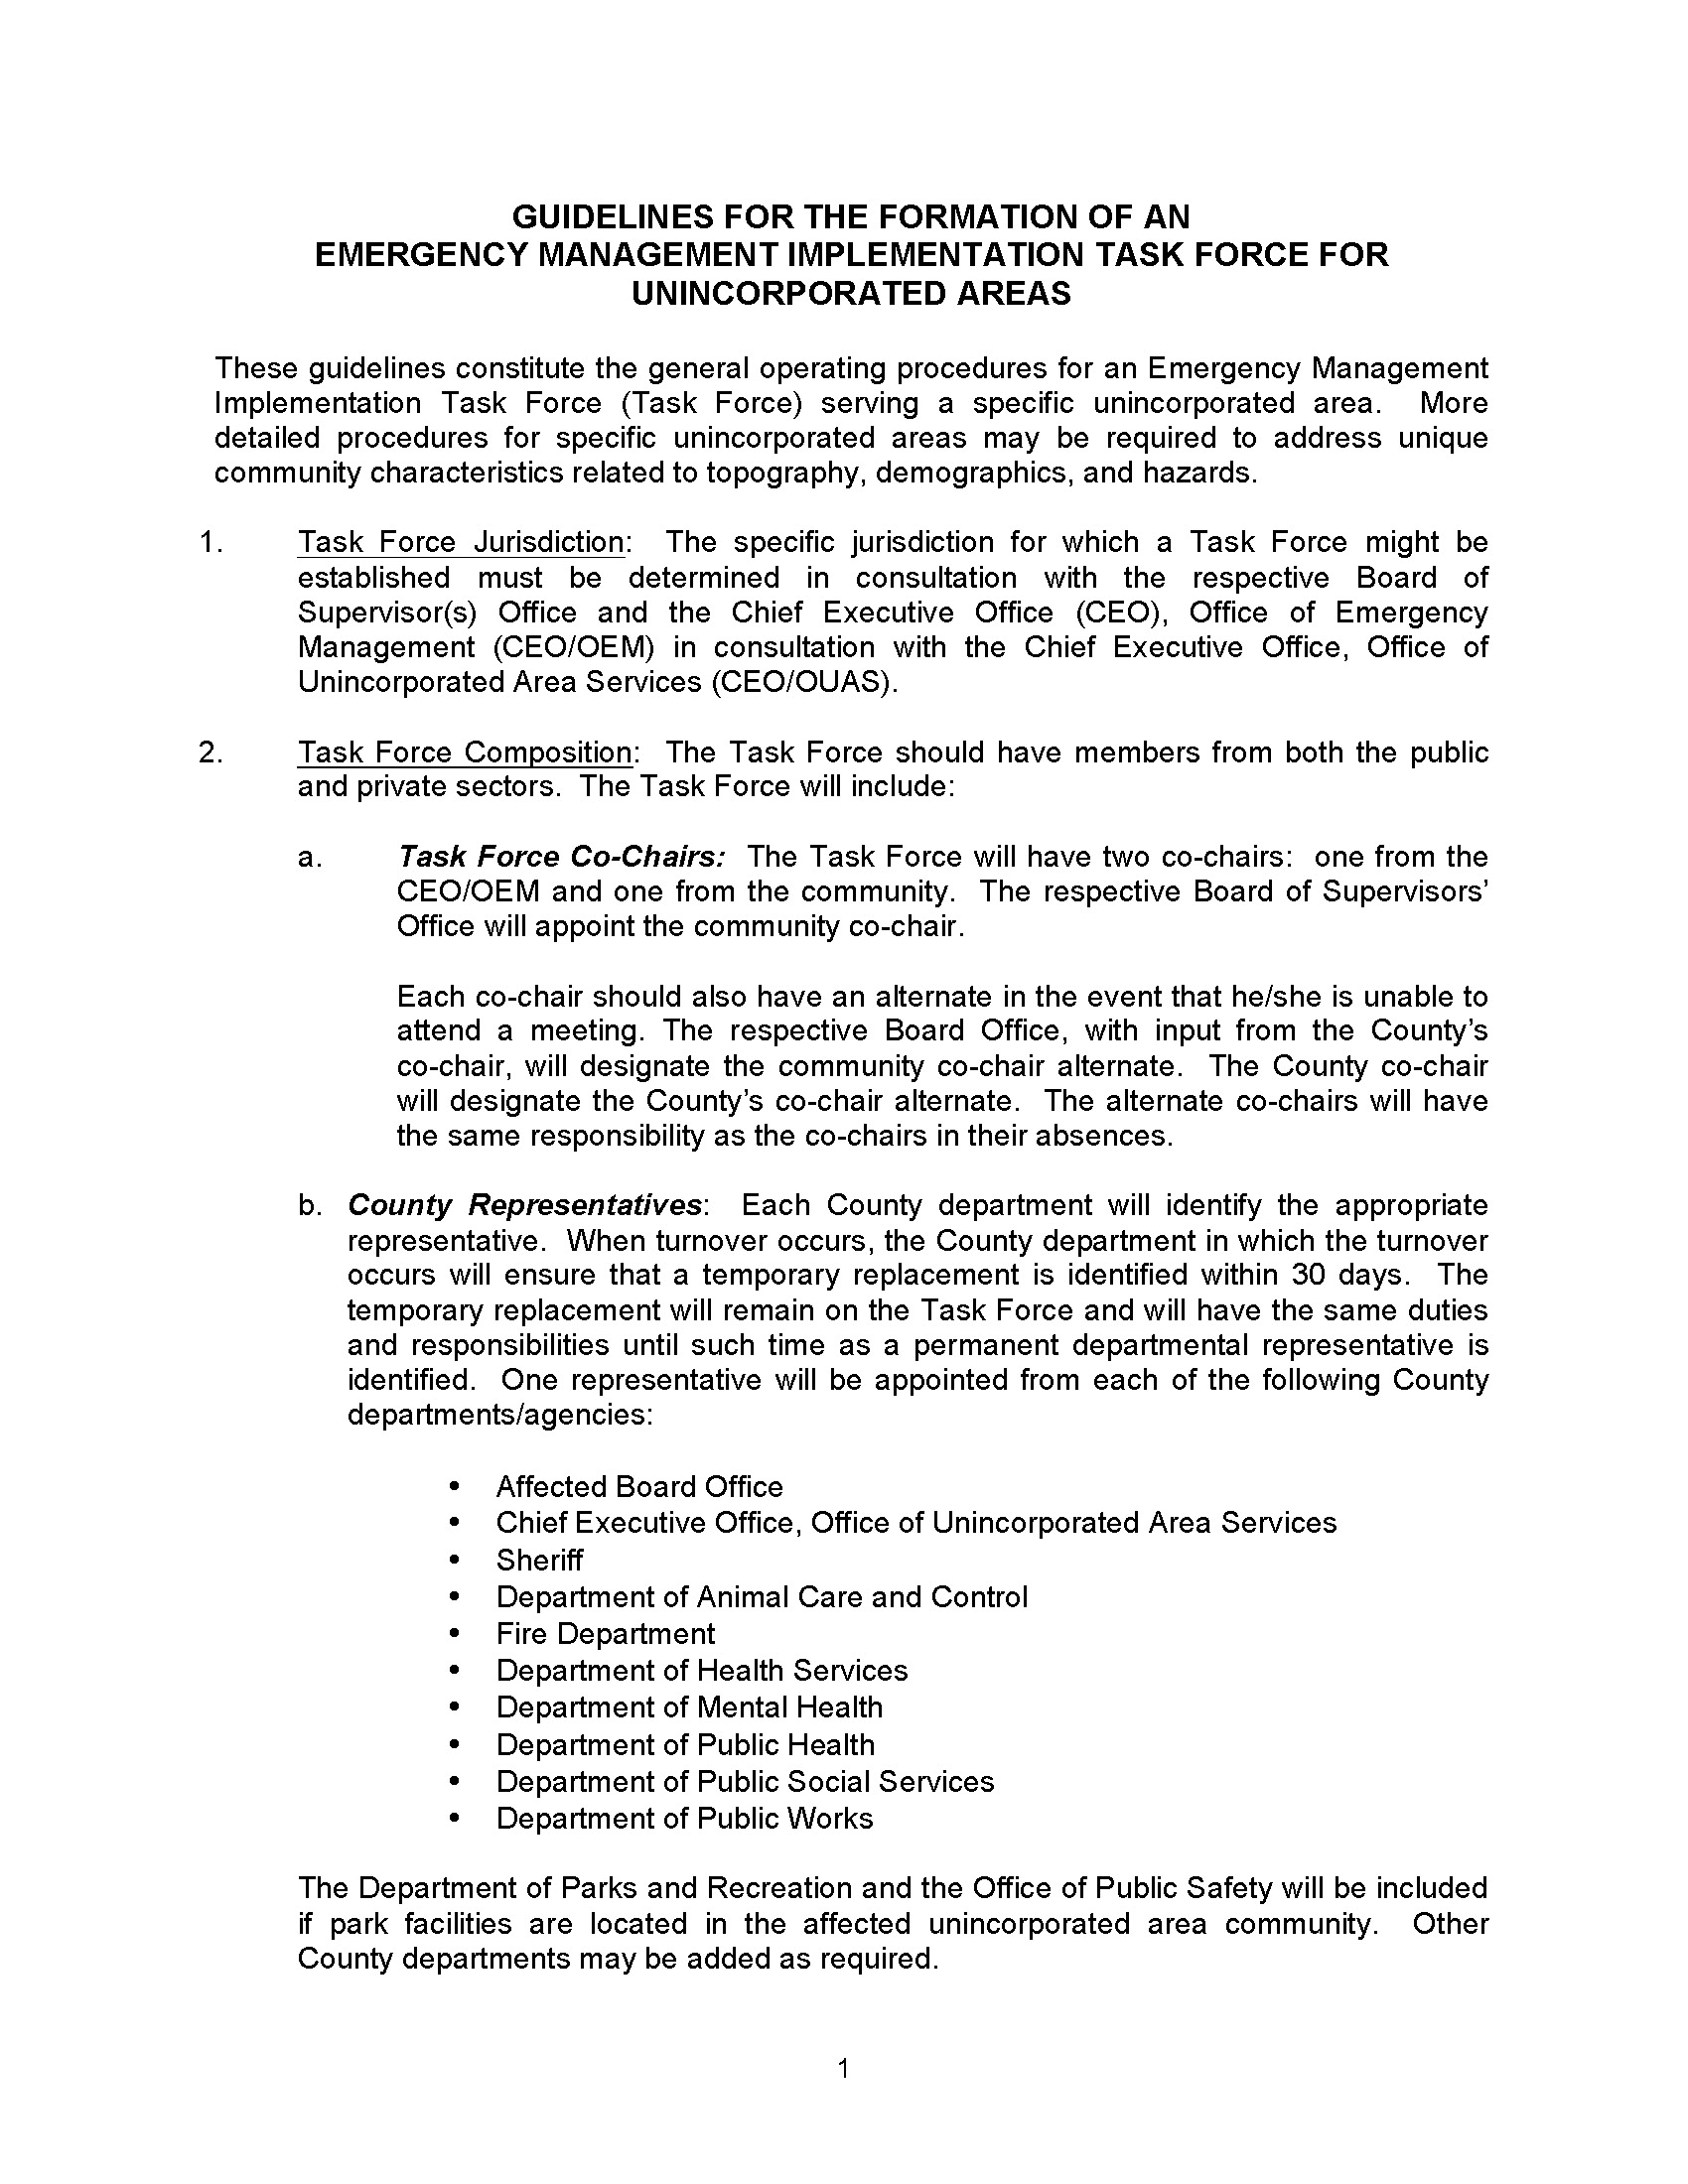 Guidelines for the Formation of an Emergency Implementation Task Force - Attachment Page 1